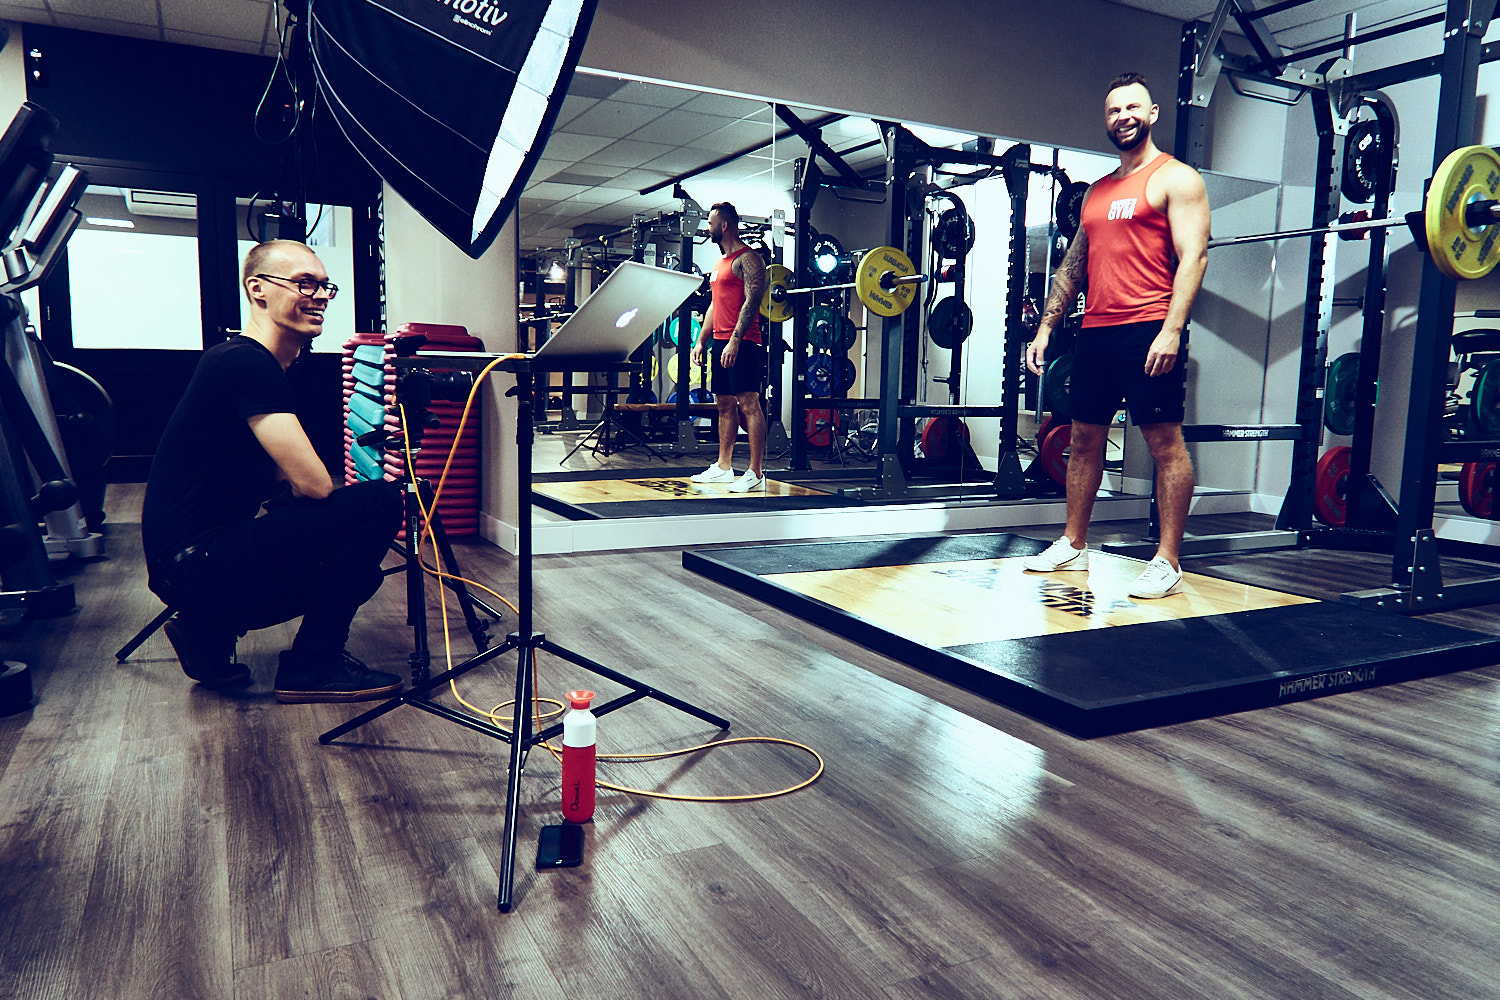 Backstage High end luxury photoshoot in gym at daniels amsterdam by mark koolen boutique photography corporate sportphotography with models athletes and fitness equipment